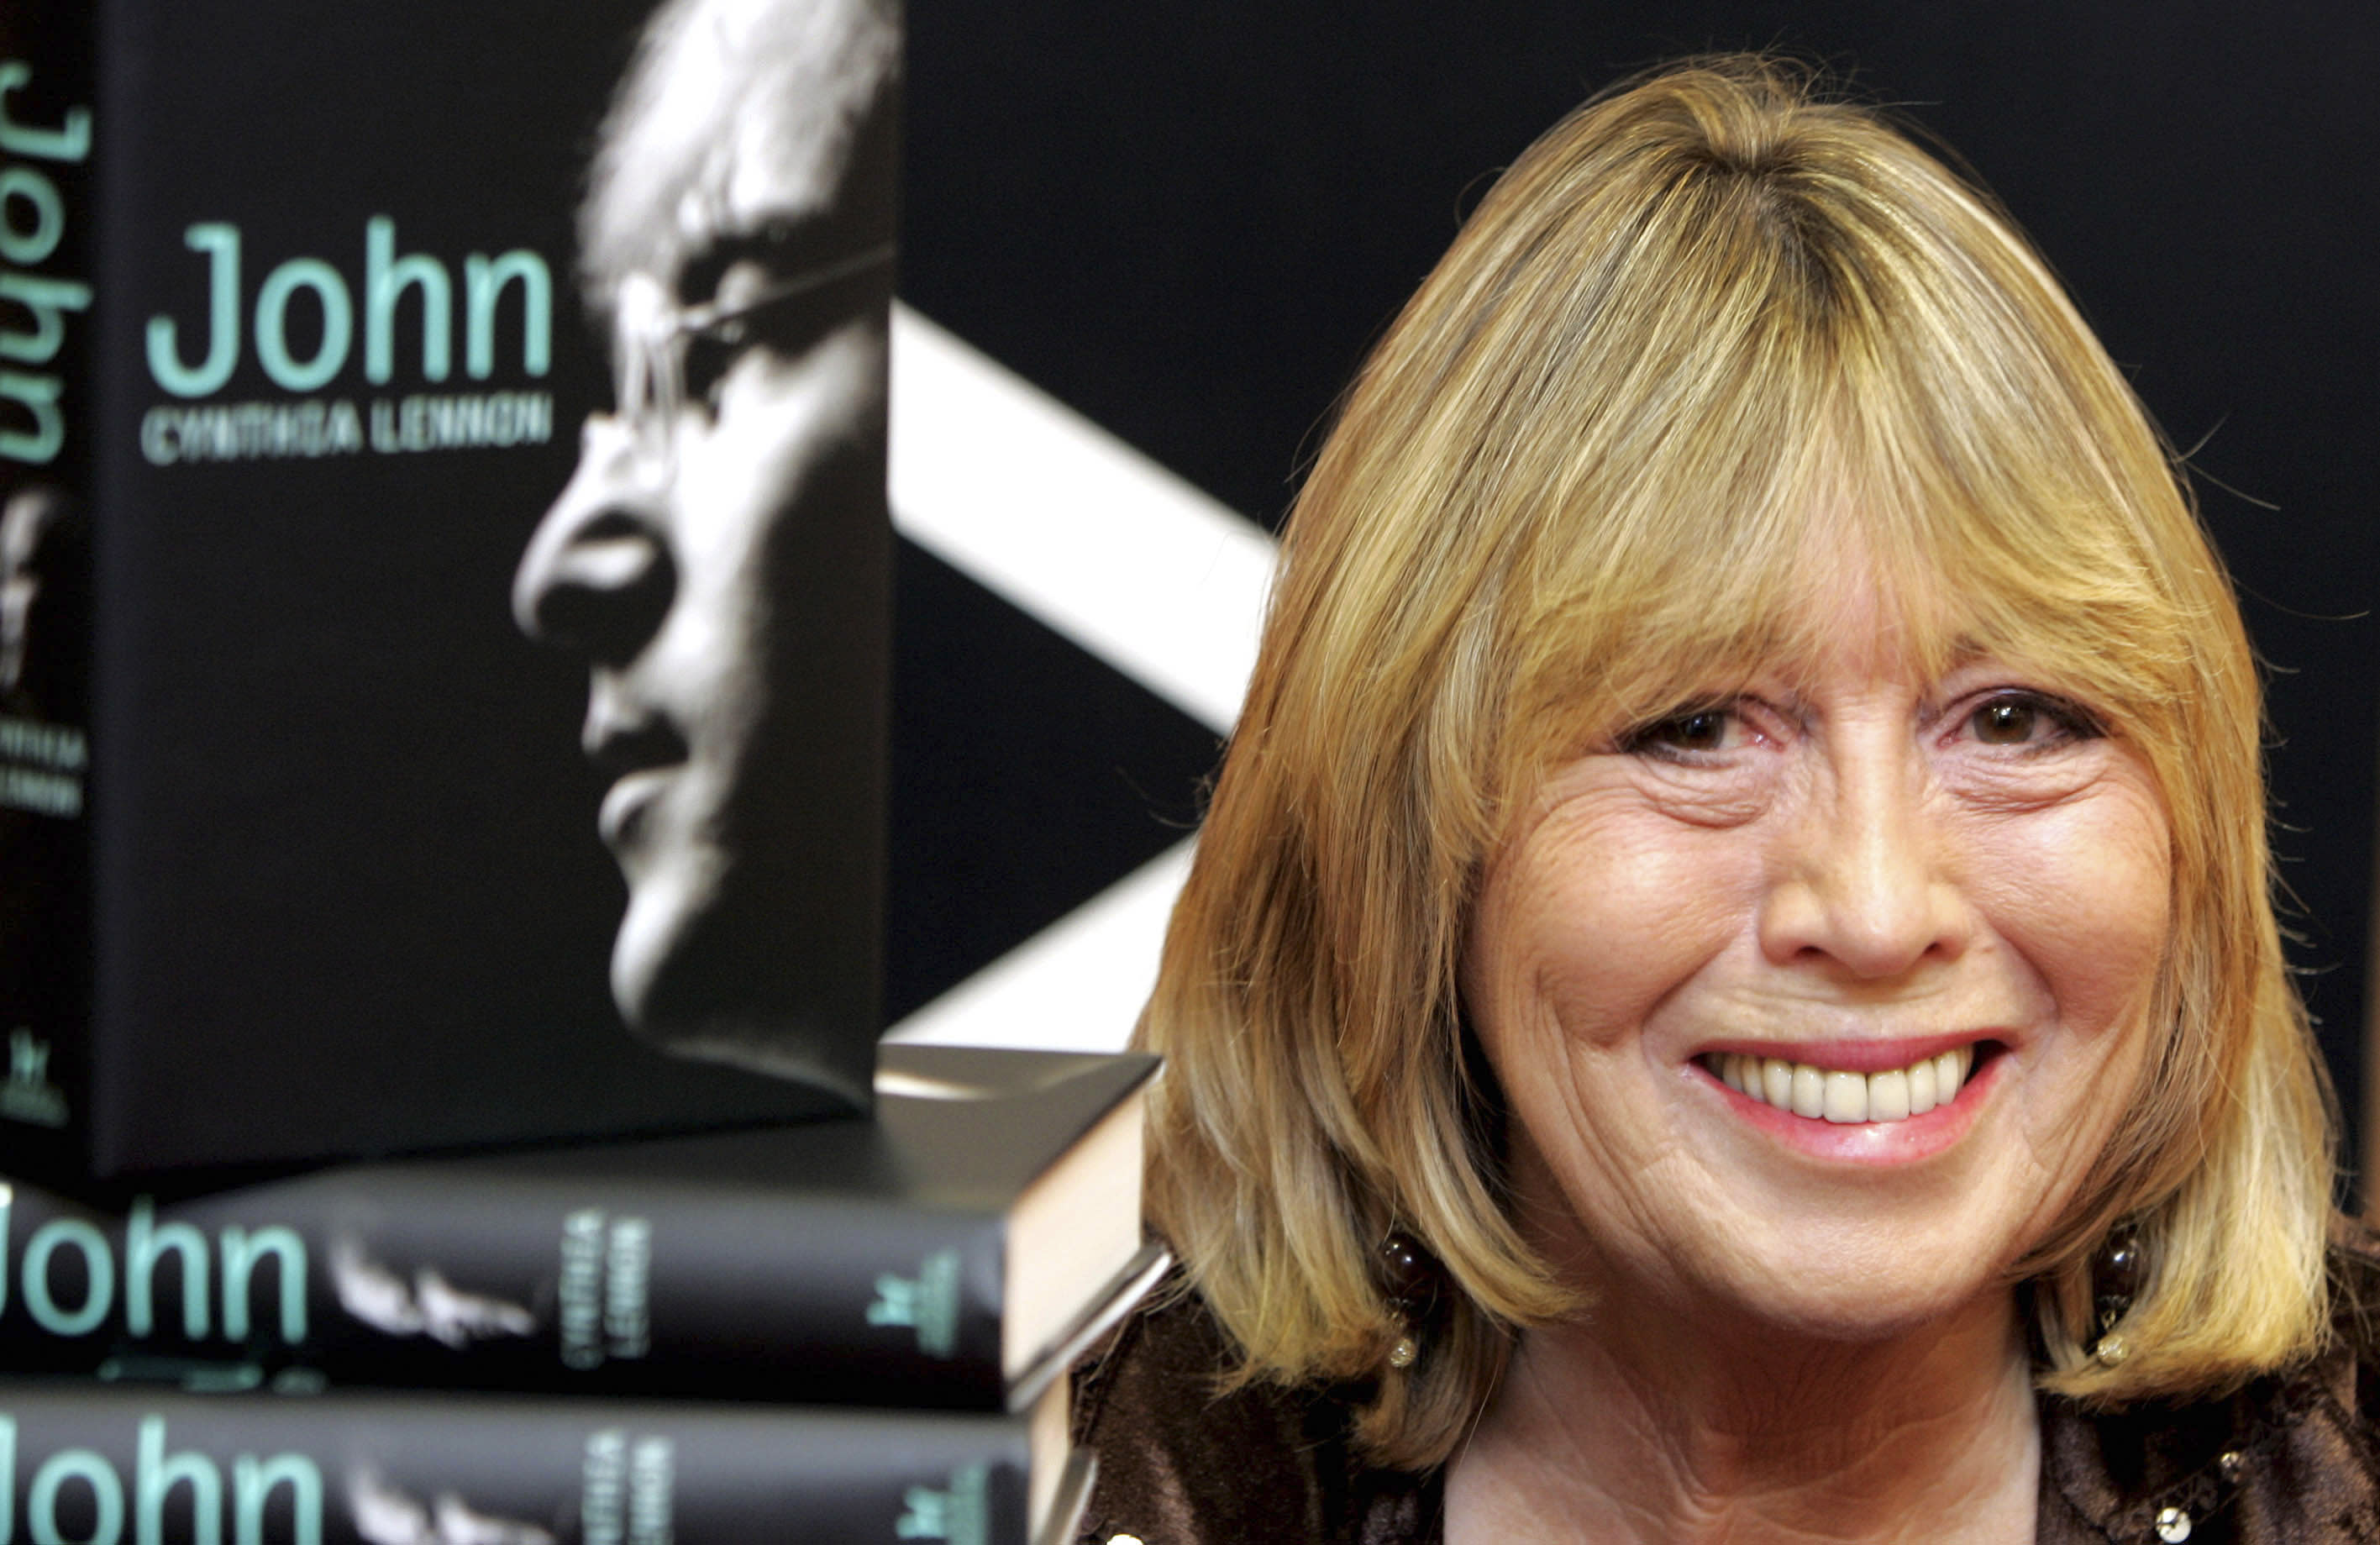 Cynthia Lennon, first wife of John Lennon, dies of cancer